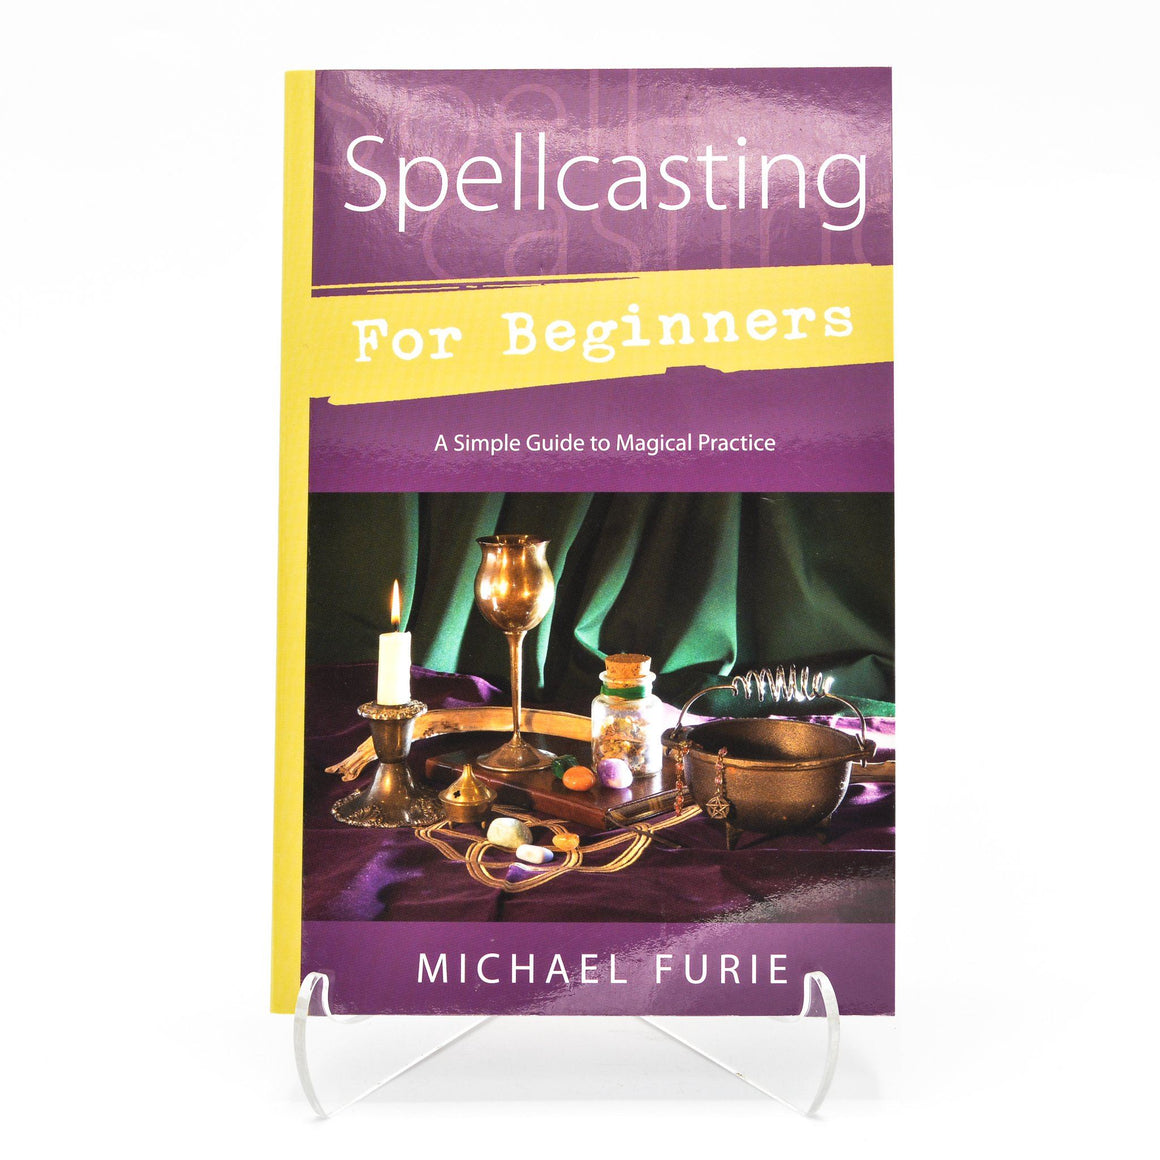 Spellcasting for Beginners, by Michael Furie